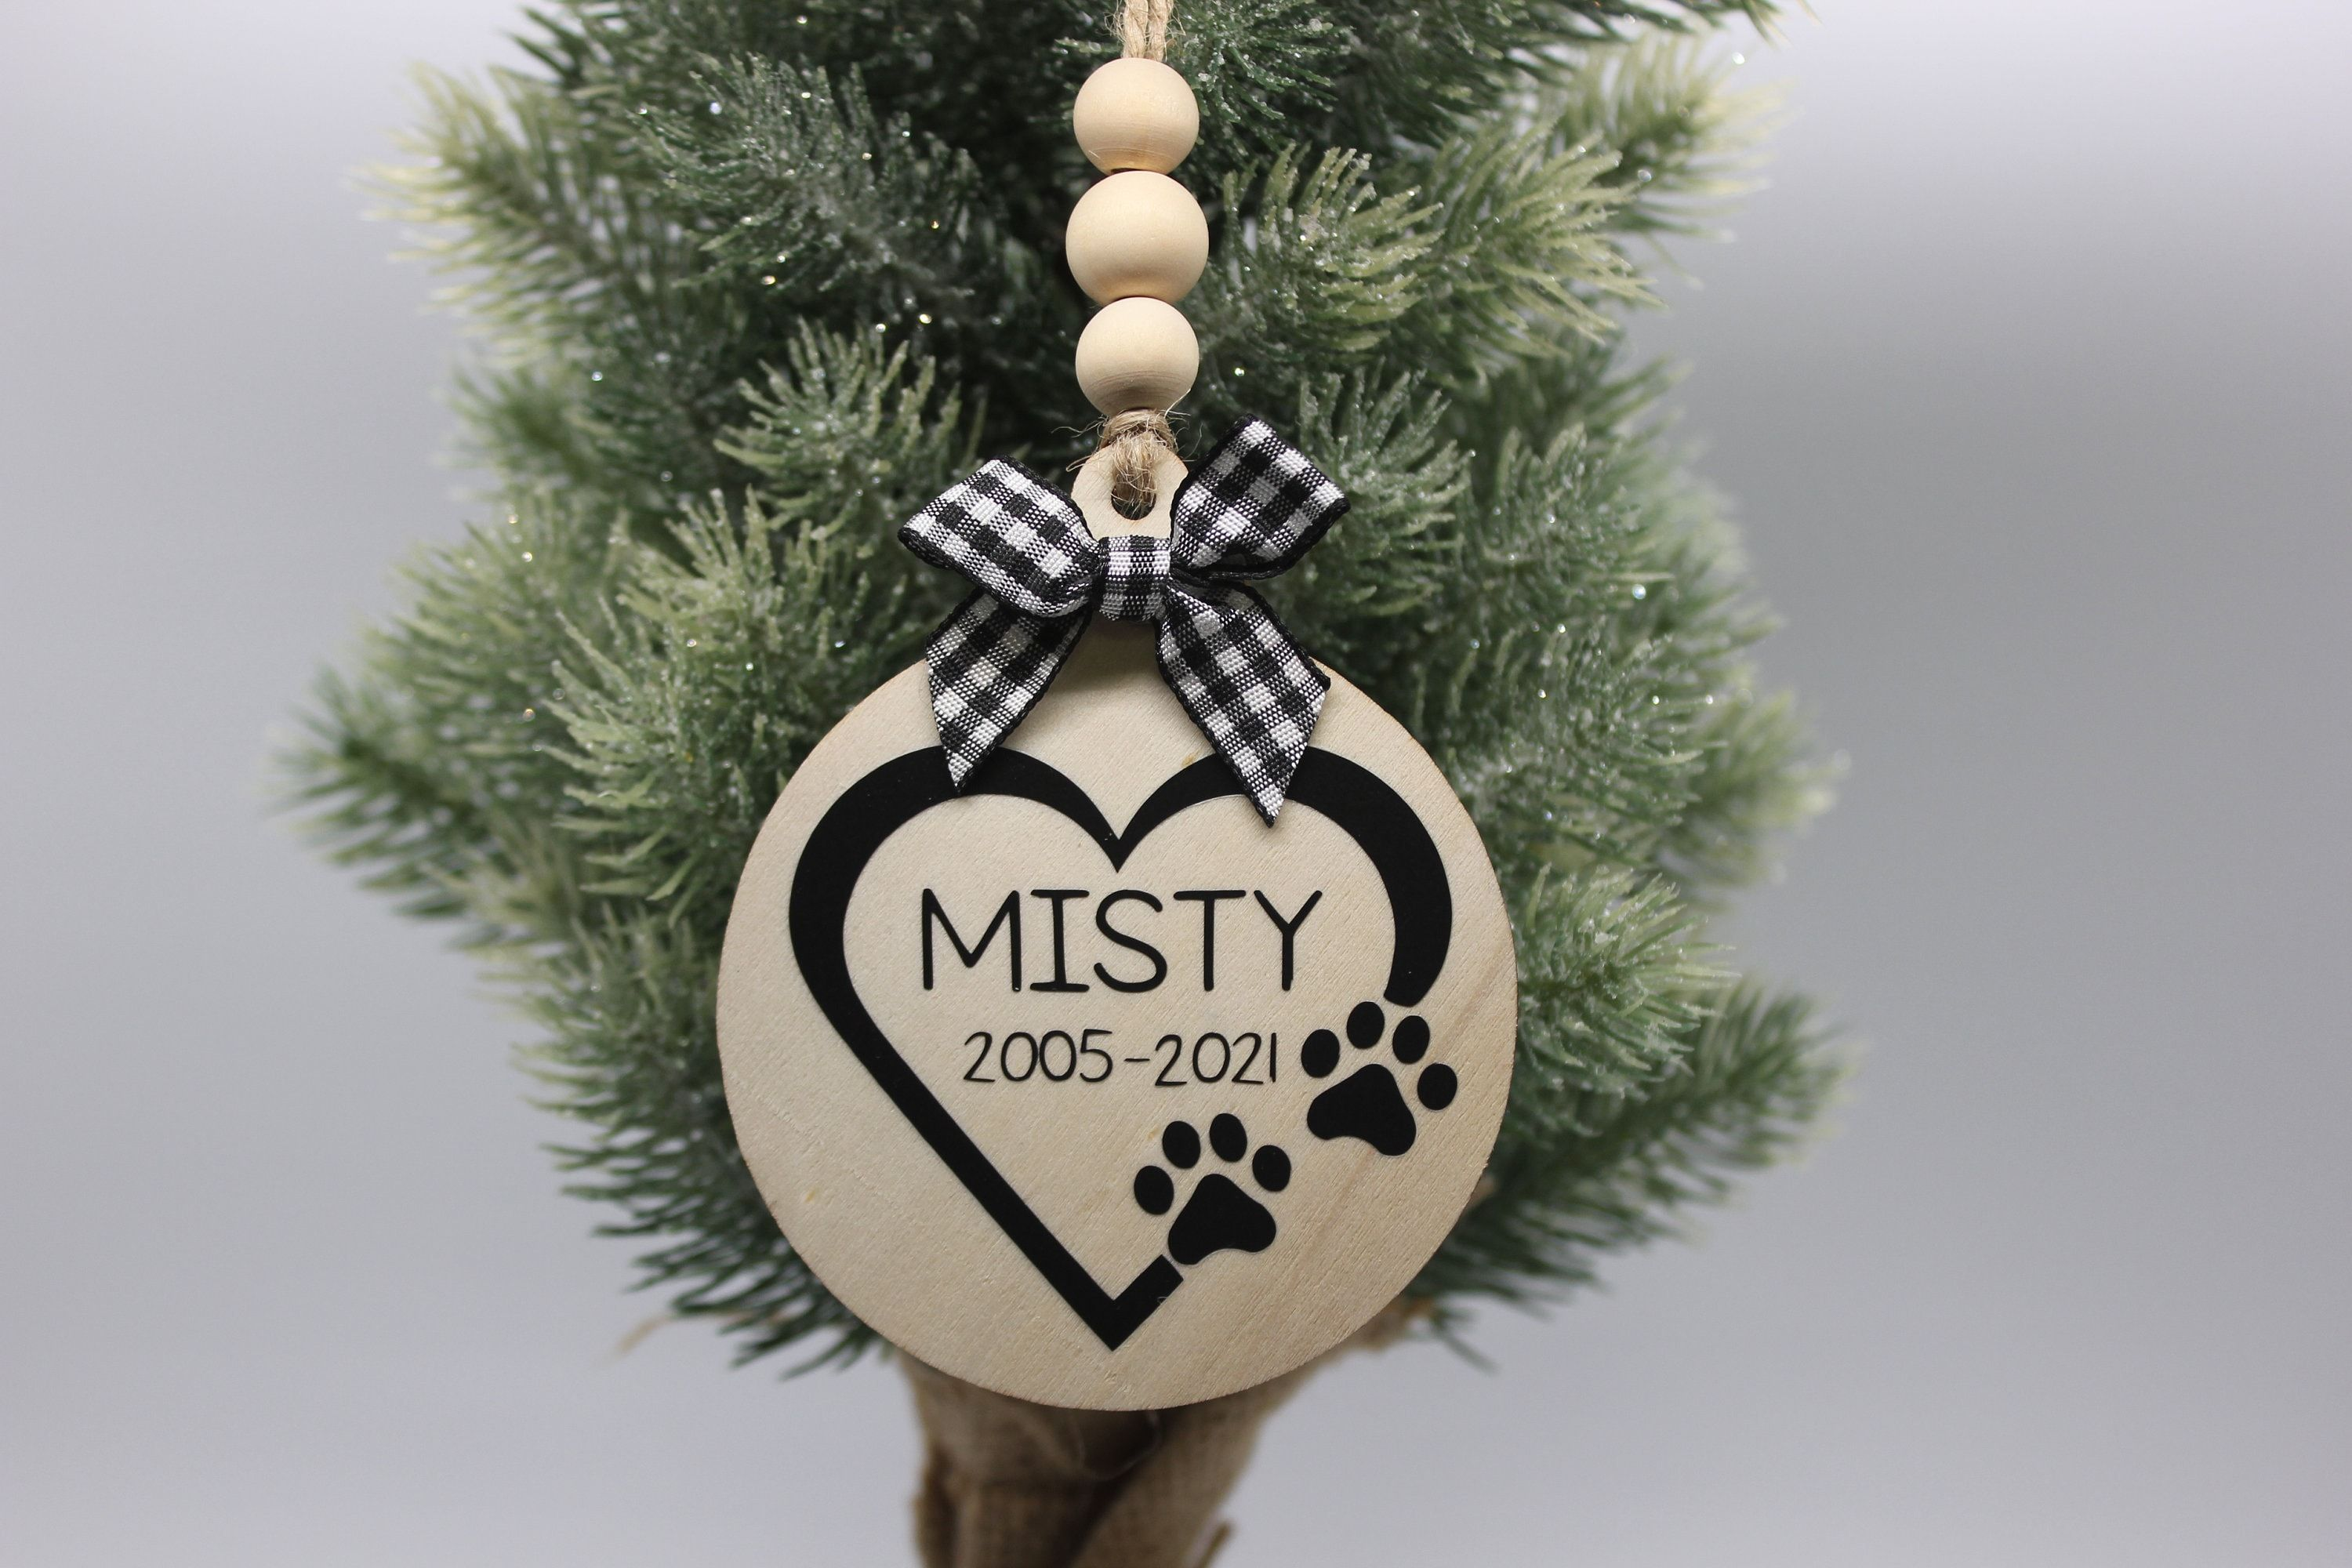 The ornament is made of a natural wood, heat transfer vinyl, ribbon, wooden beads, and lots of love:). They are approximately 2.7 - 3.5 inches in diameter and 2.5 mm thick. They come with jute twine string for easy hanging. All ornaments will come in a decorative bag for easy gift giving. *DISCLAIMERS* This is not a toy. For decoration only.